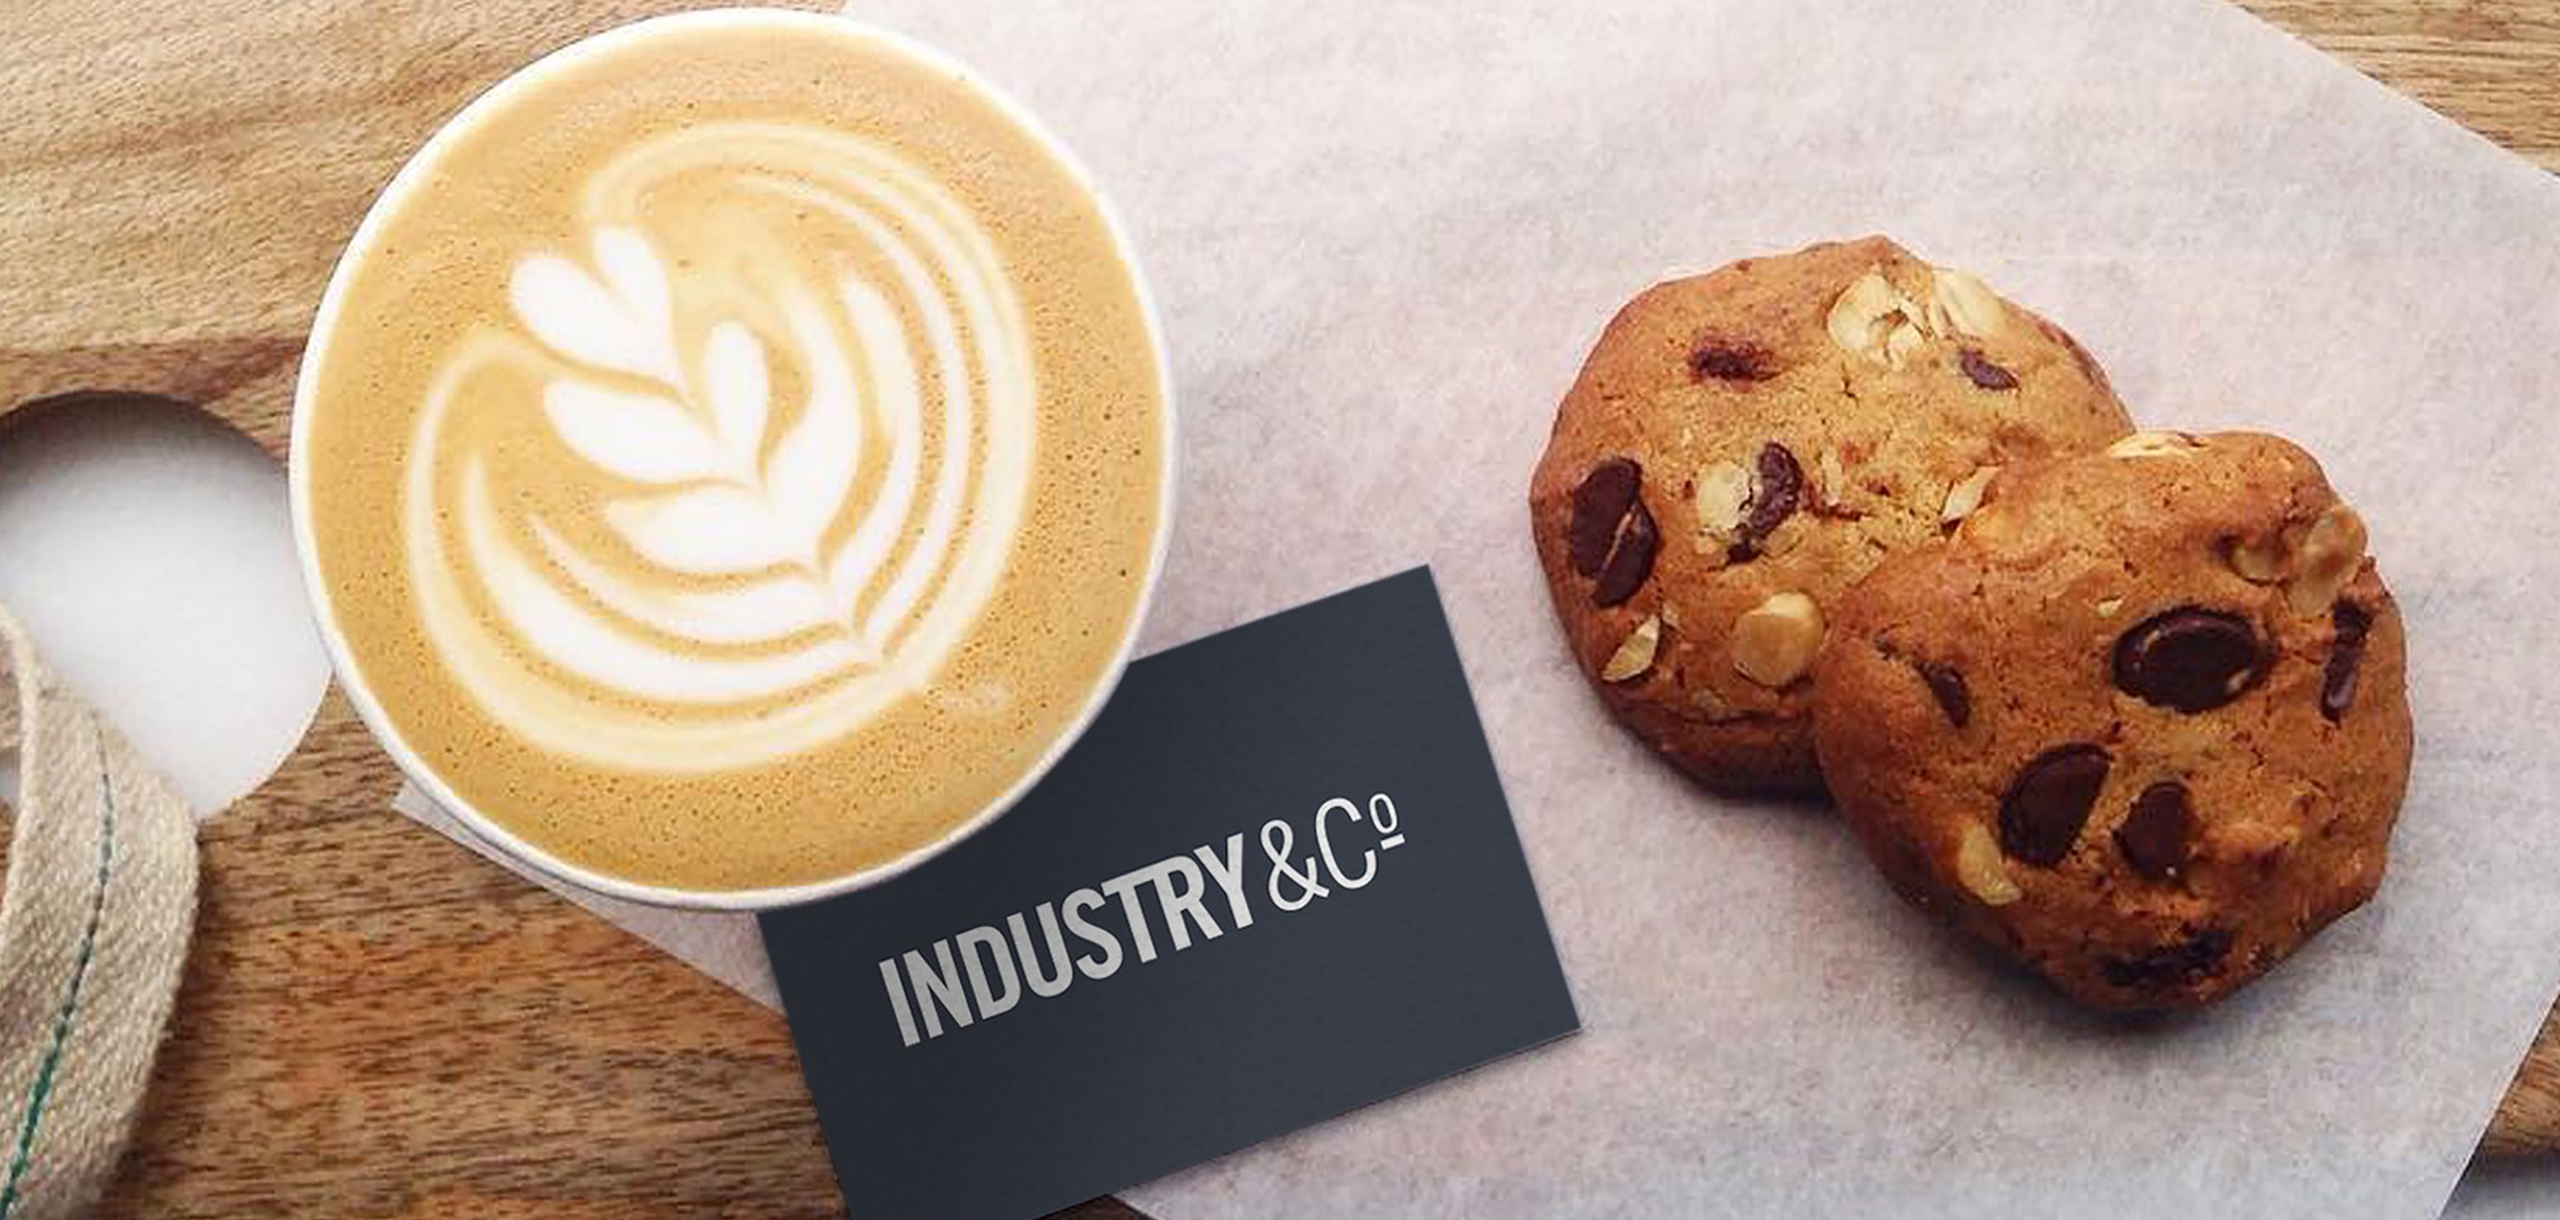 Coffee and business card for Irish lifestyle shop Industry & Co, designed by White Bear Studio